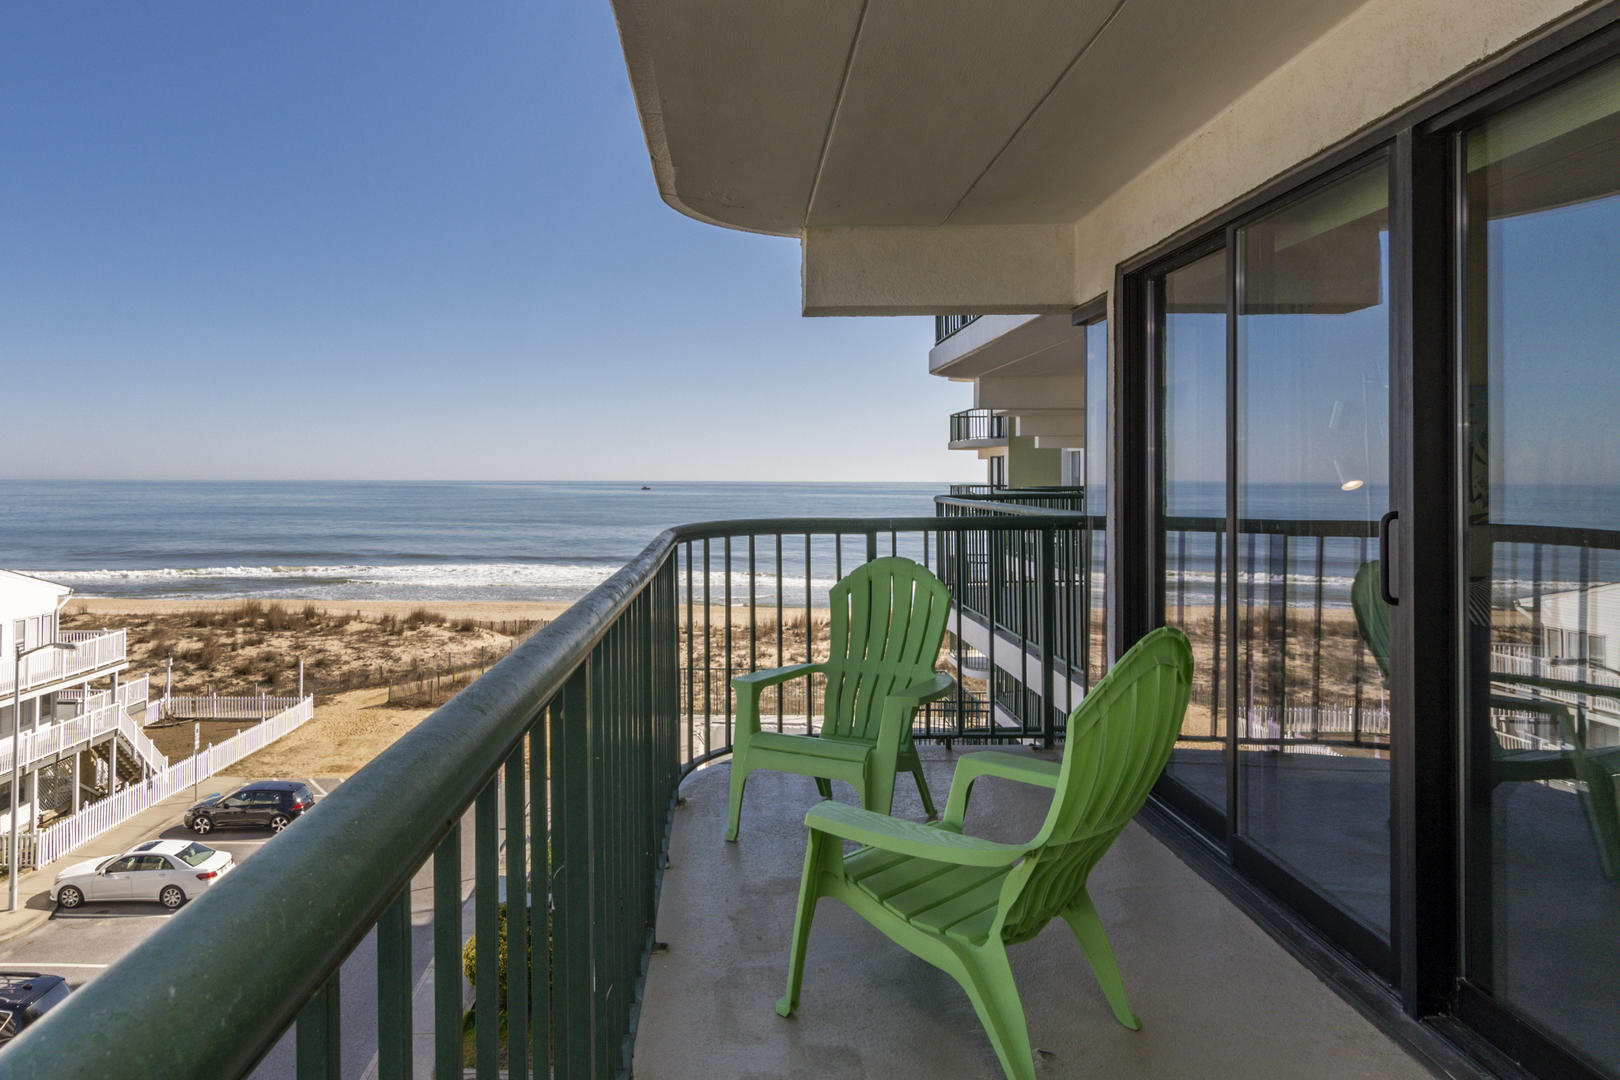 Summer Beach 407 - Private Balcony